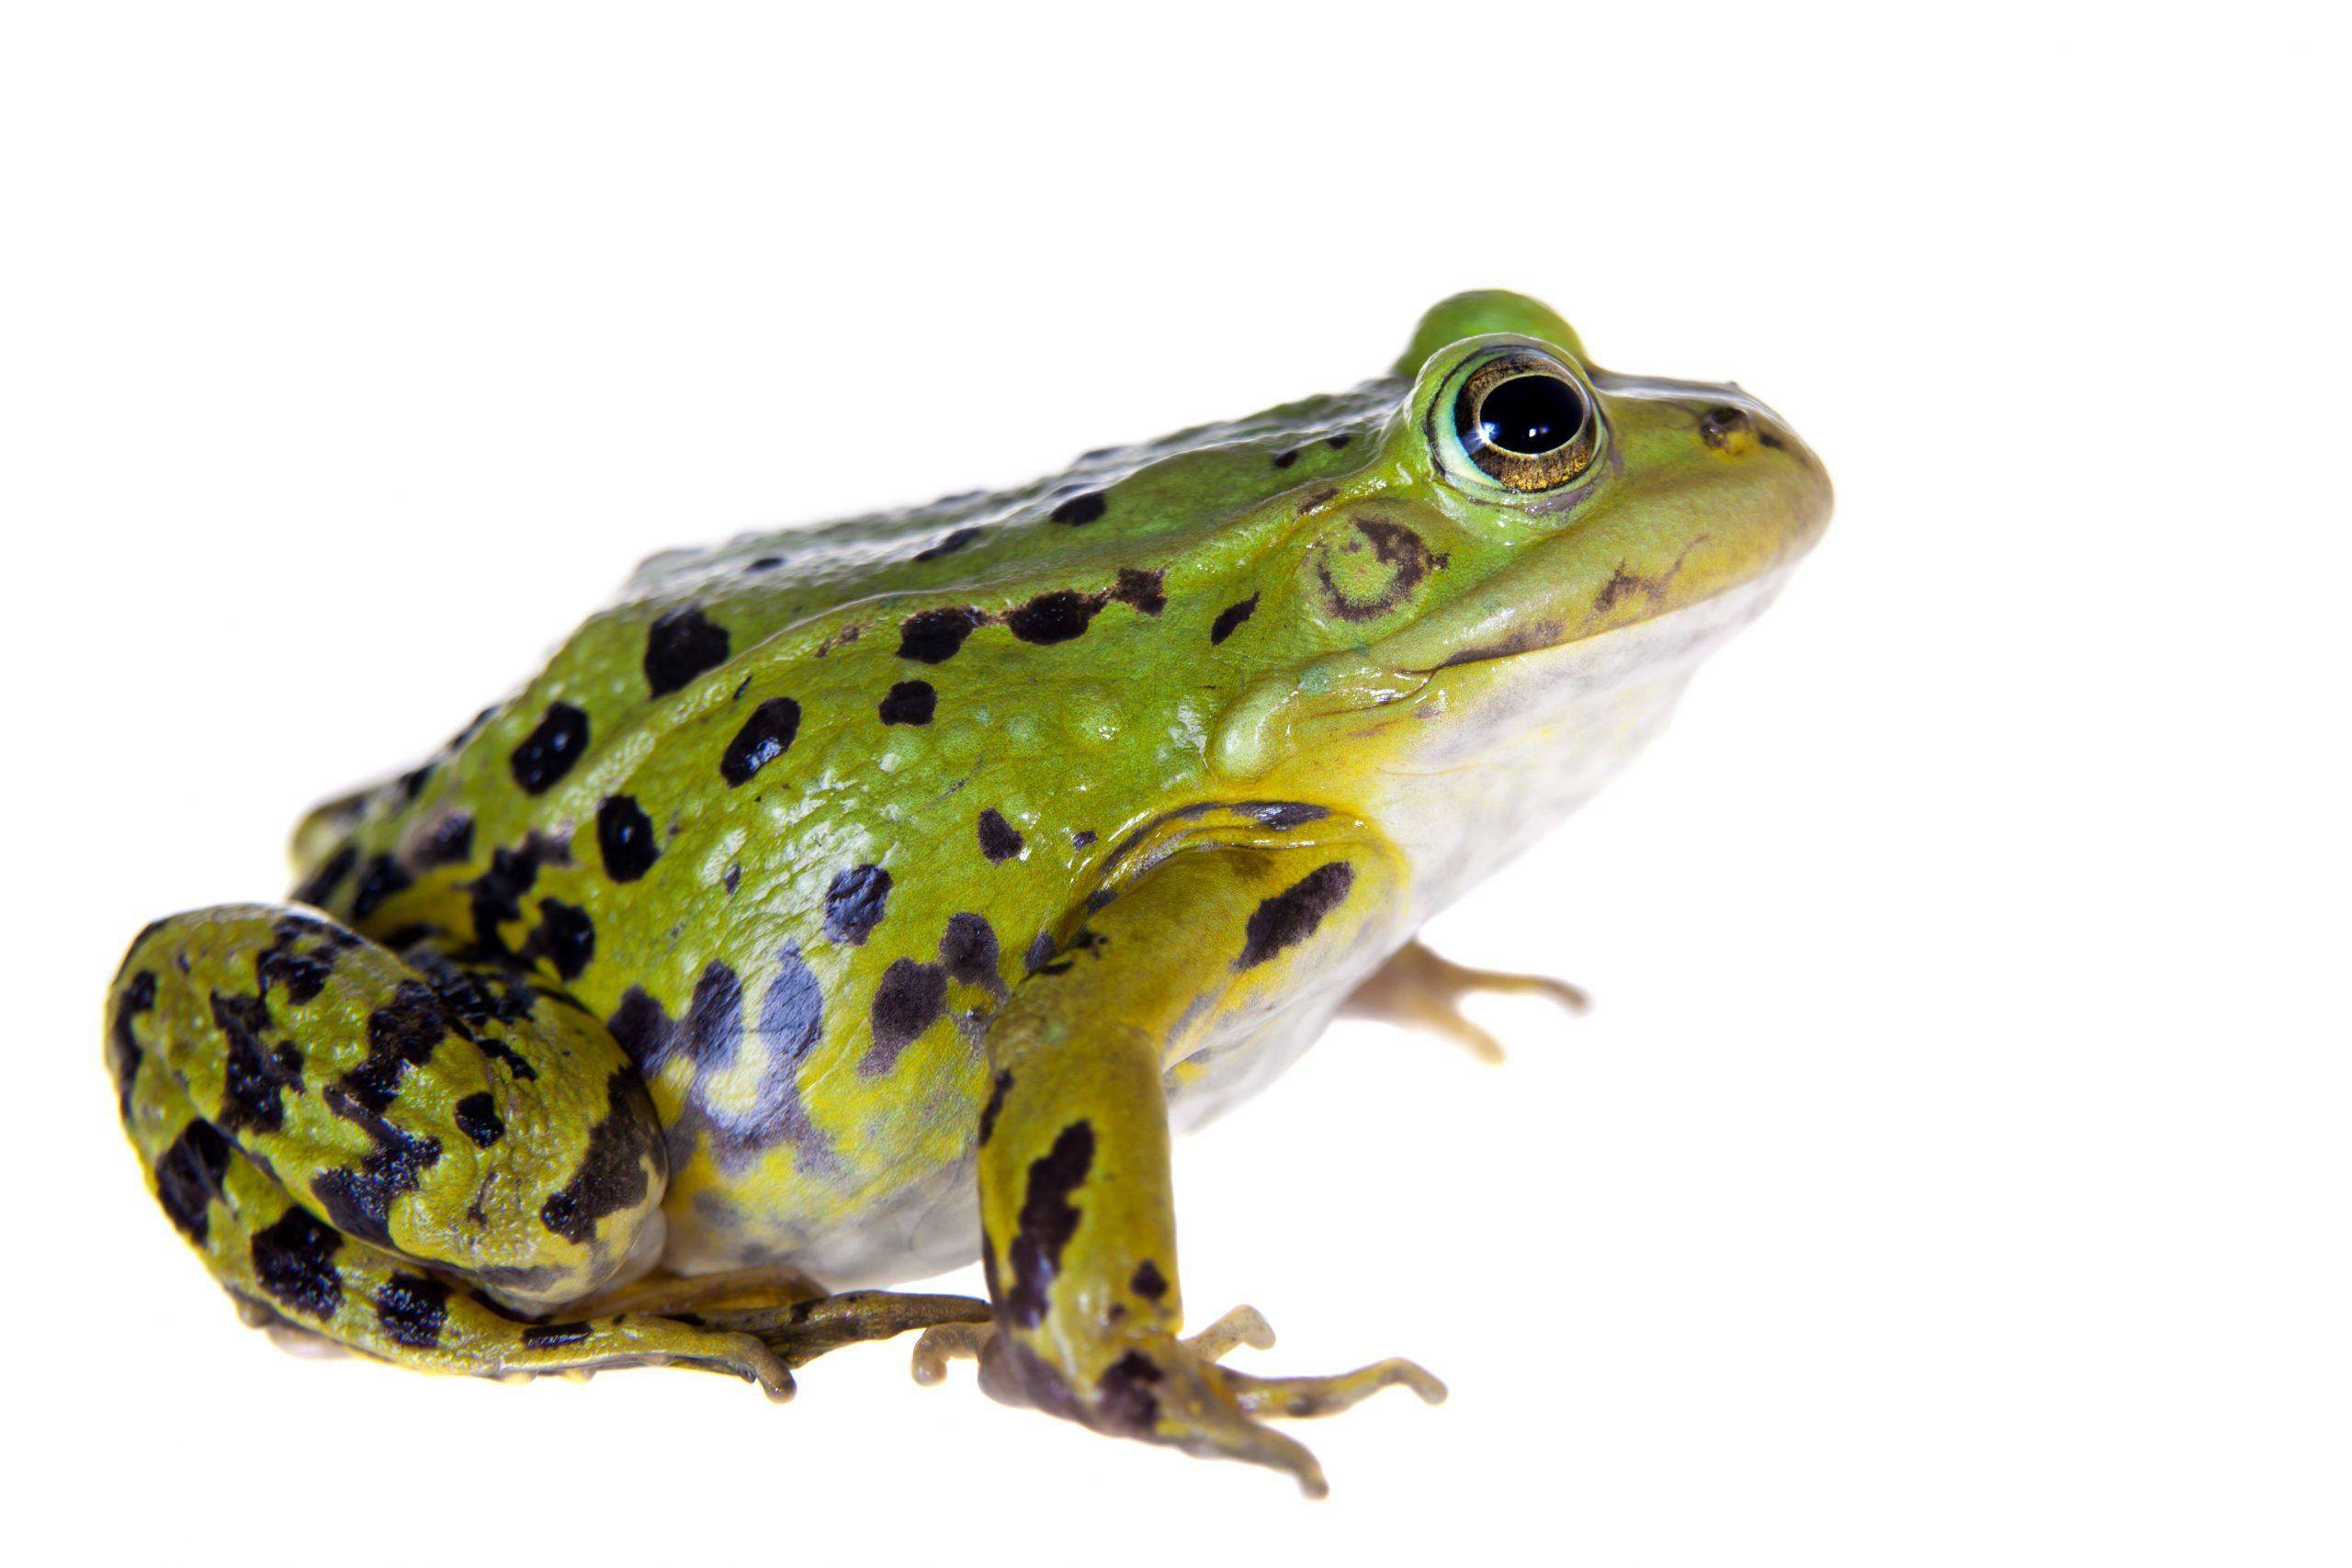 Synthetic Frogs Being Successfully Used for Dissection at